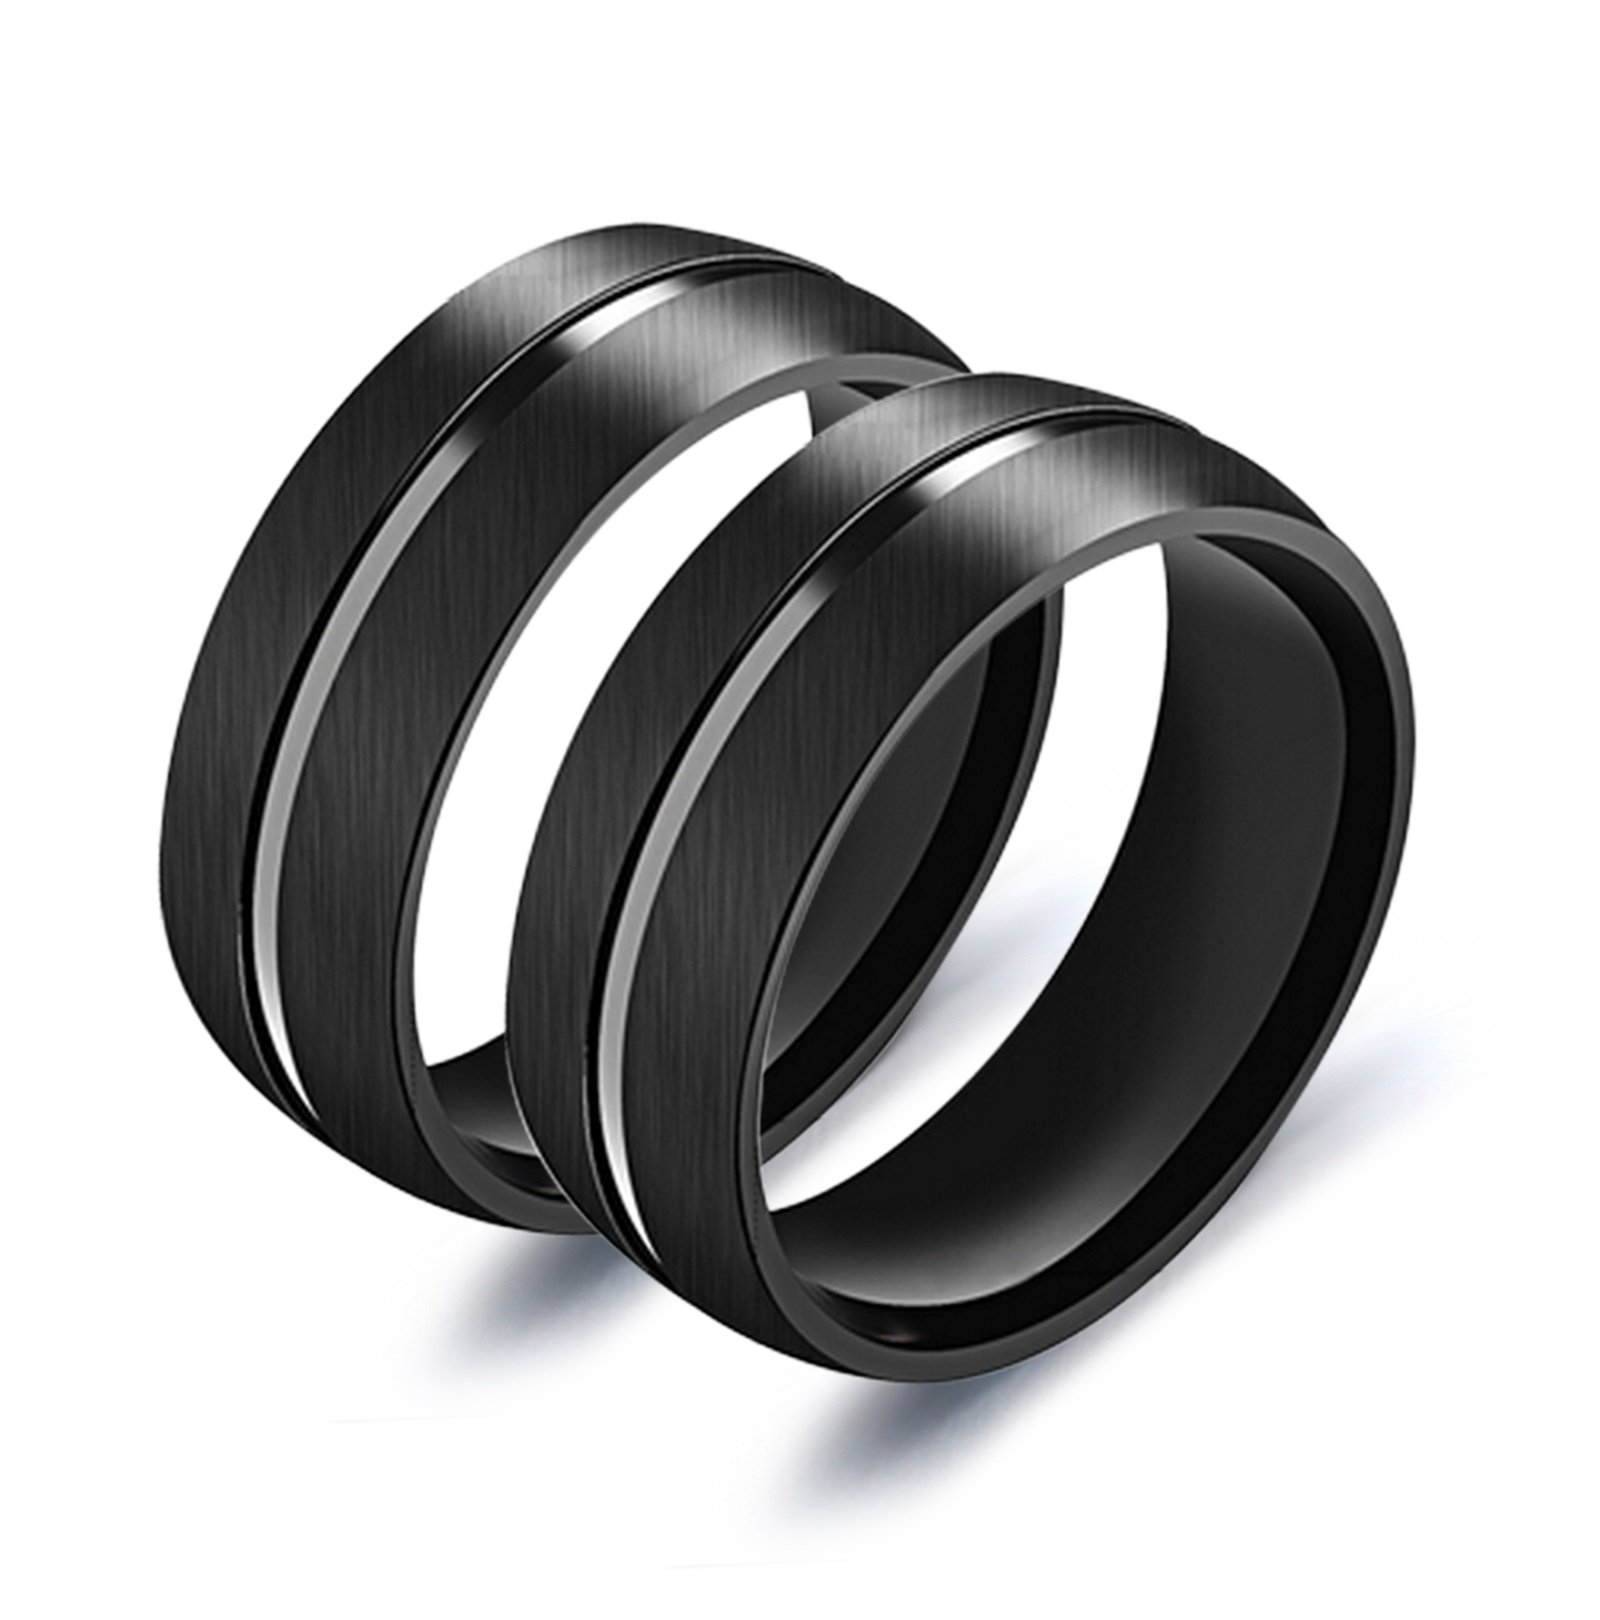 Bishilin 2 Pieces Gay Couple Ring Stainless Steel High Polished?Width?11MM?Round Eternity Wedding Black Size 8 + Size 8